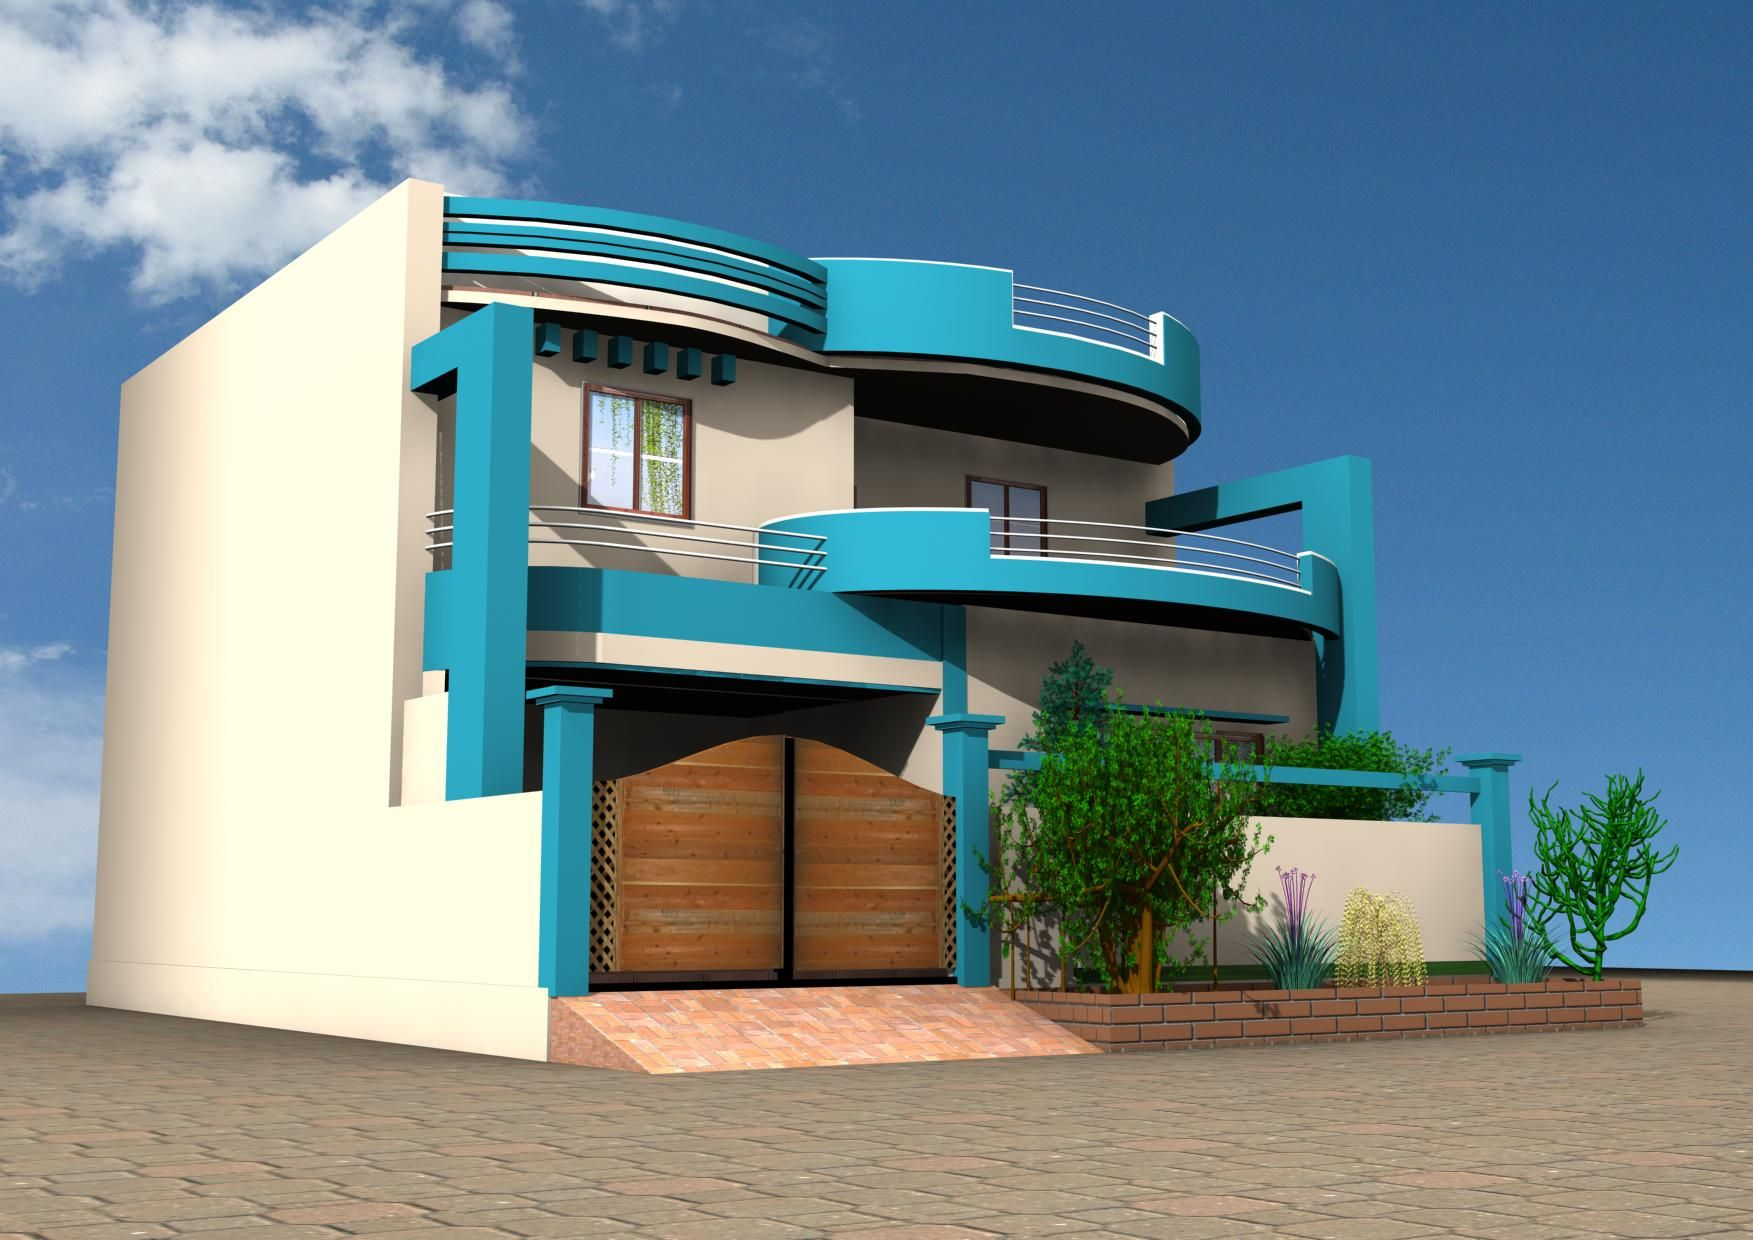 3d home design images hd 1080p Free home design programs